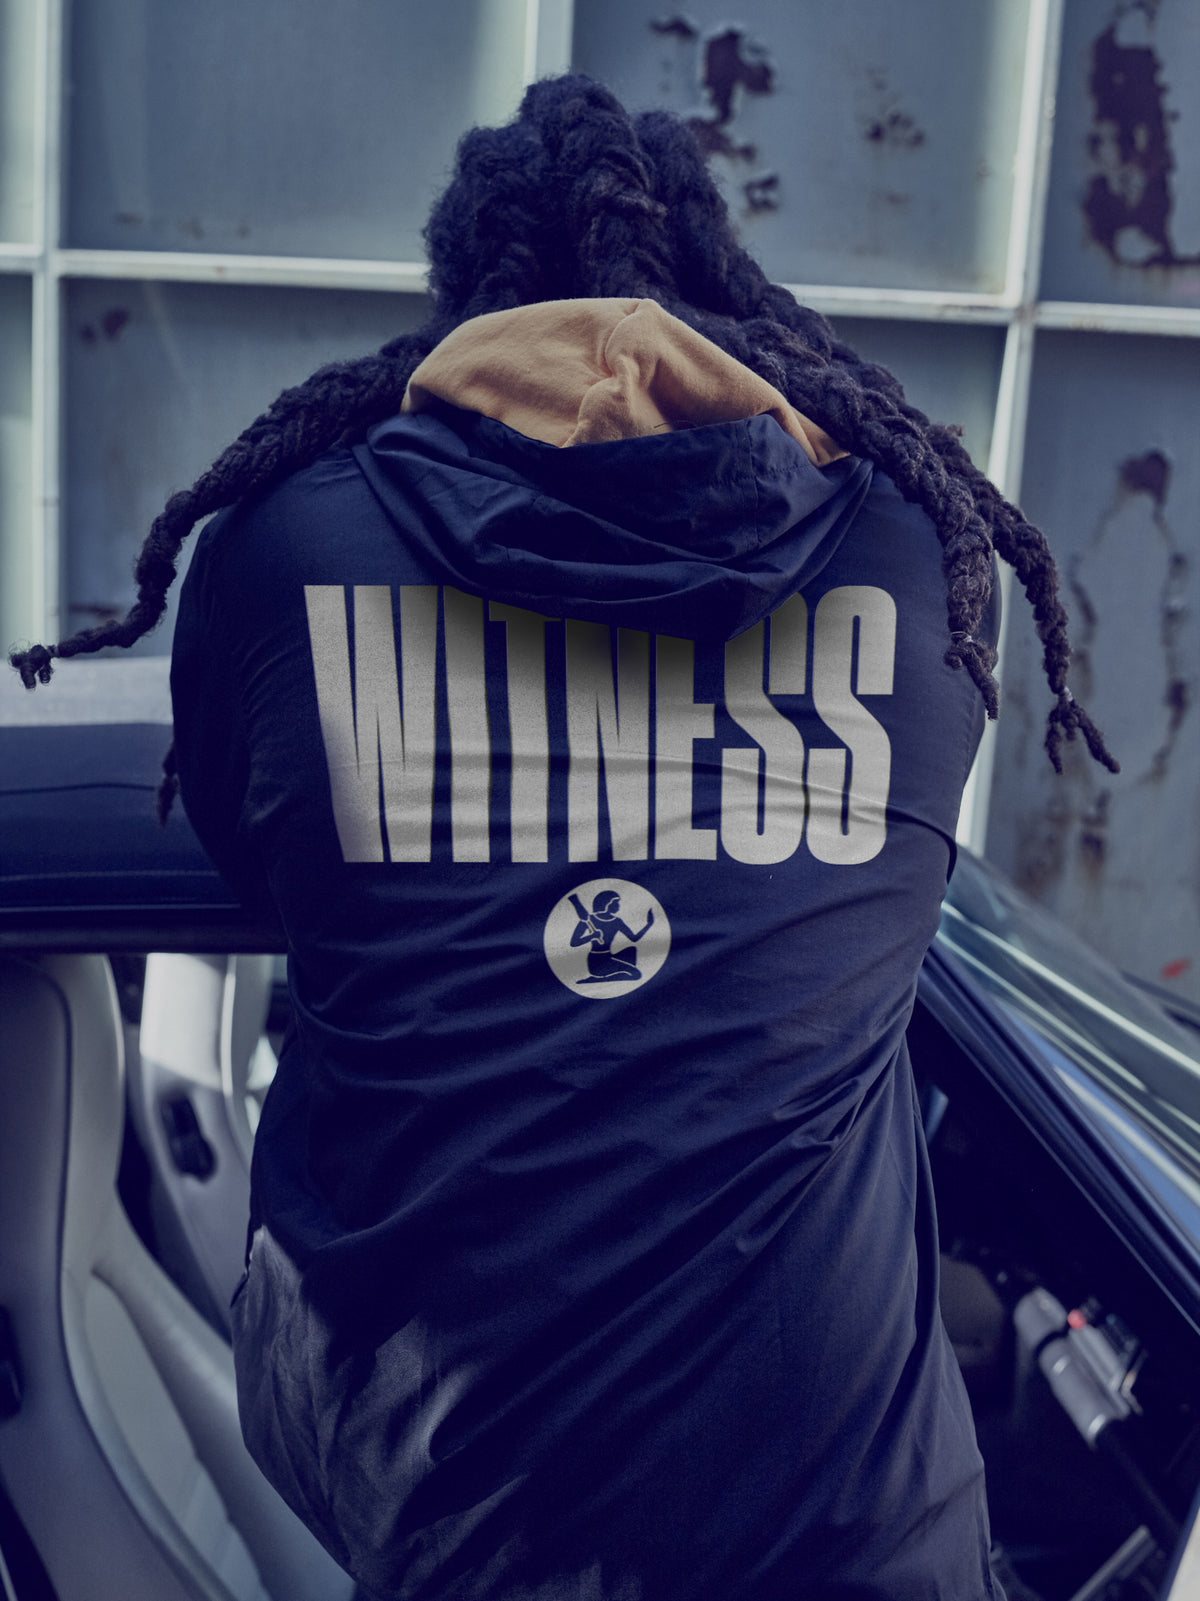 WITNESS ANORAK WINDBREAKER